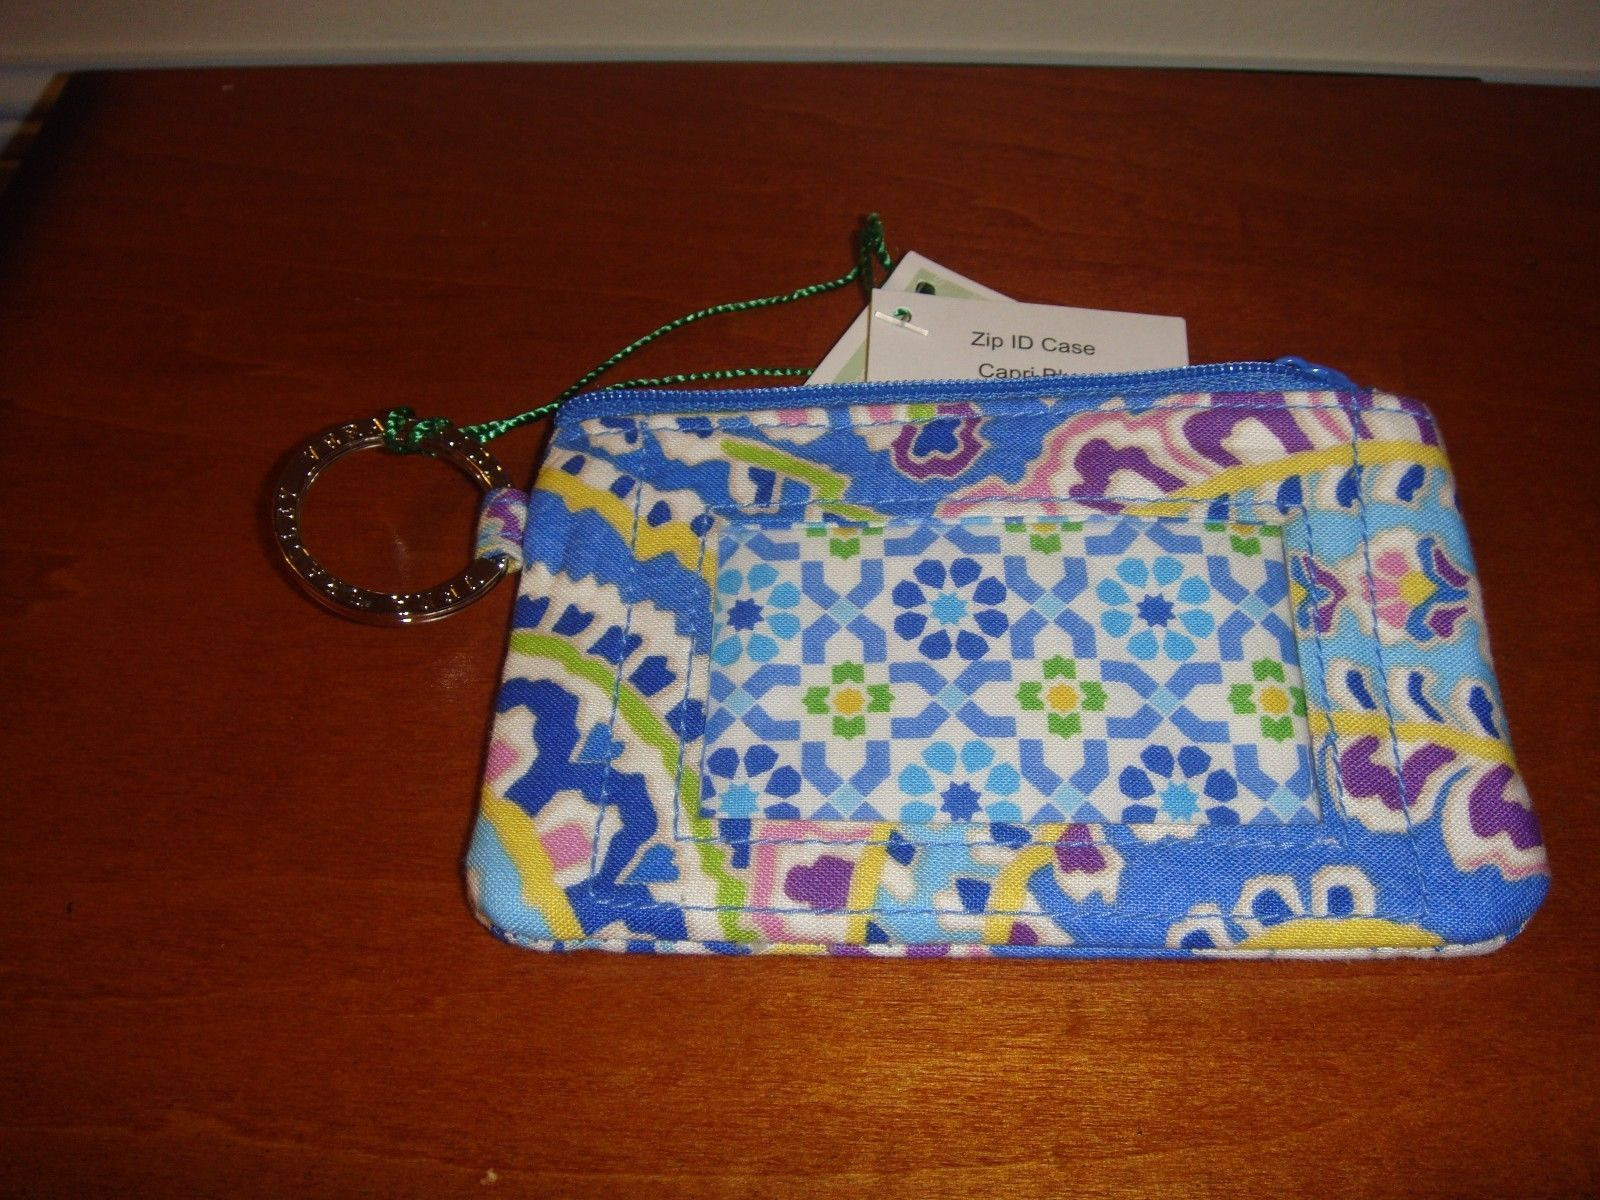 6a91c9c2a5d3 Vera Bradley Capri Blue Zip ID Case and 39 similar items. 57